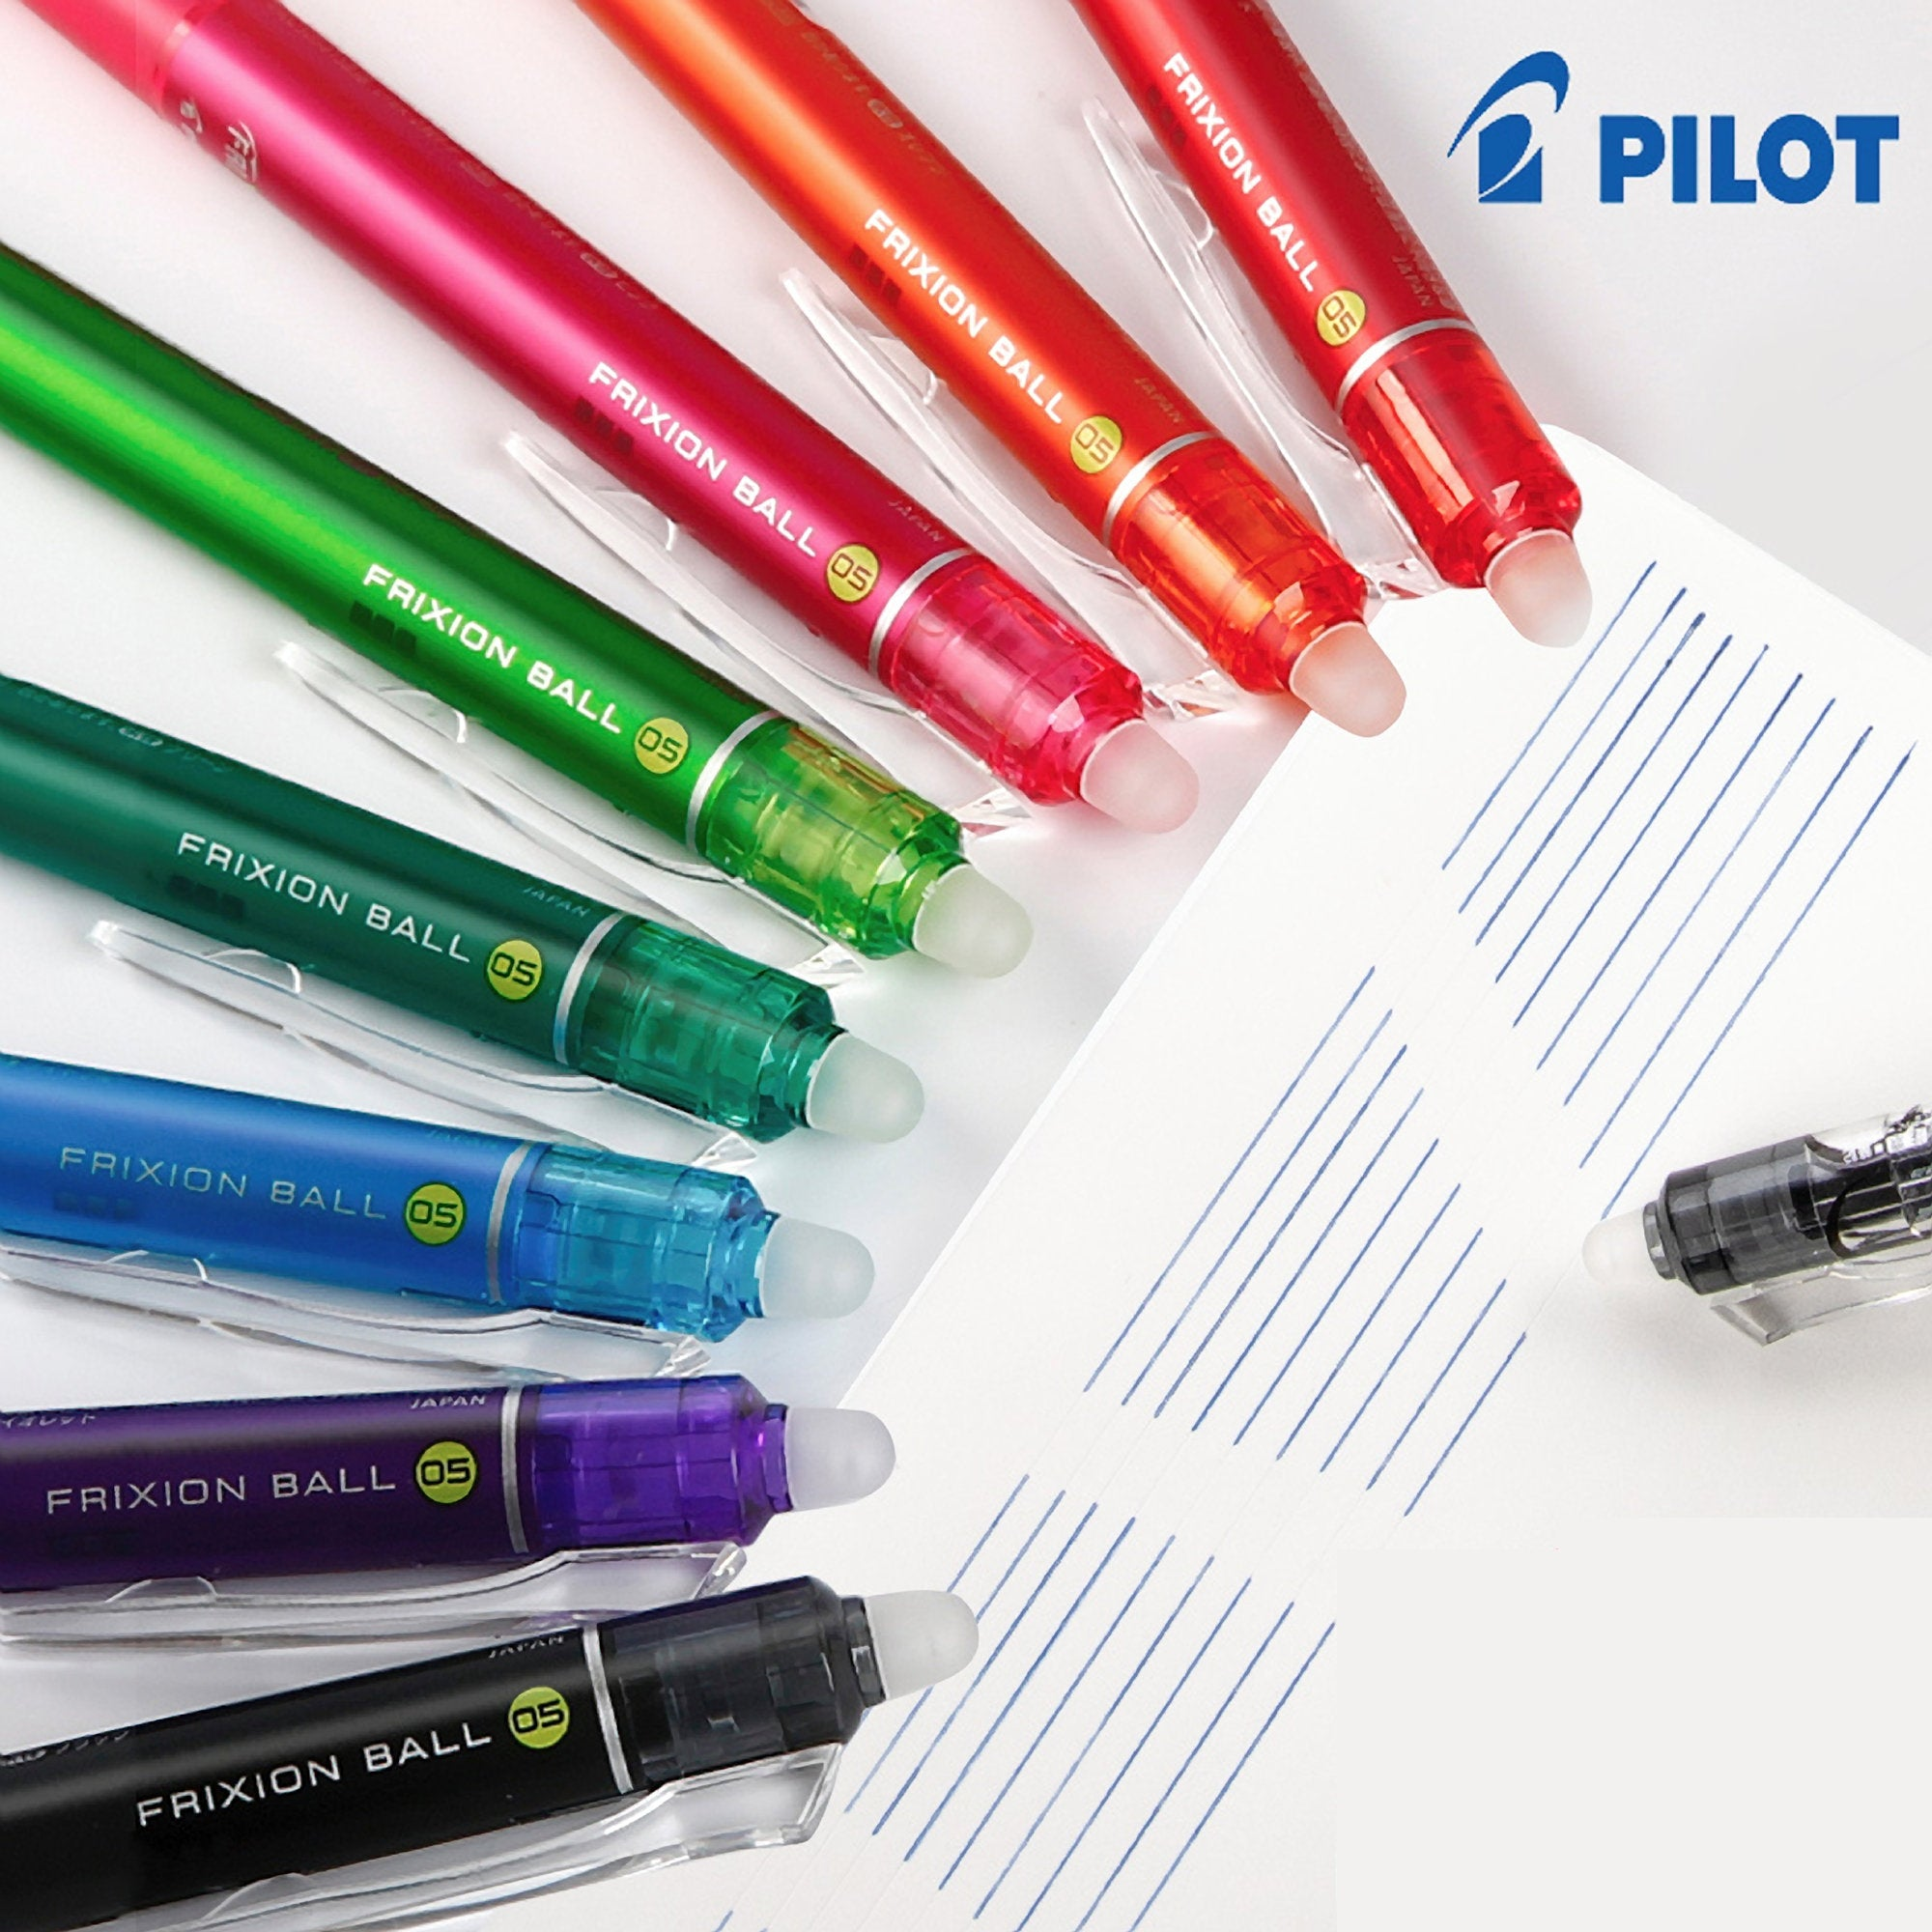 Pilot FriXion ORANGE Ball Knock 05 Gel Pen 0.5 mm Erasable Pen | LFBK-230EF - The Stationery Life!